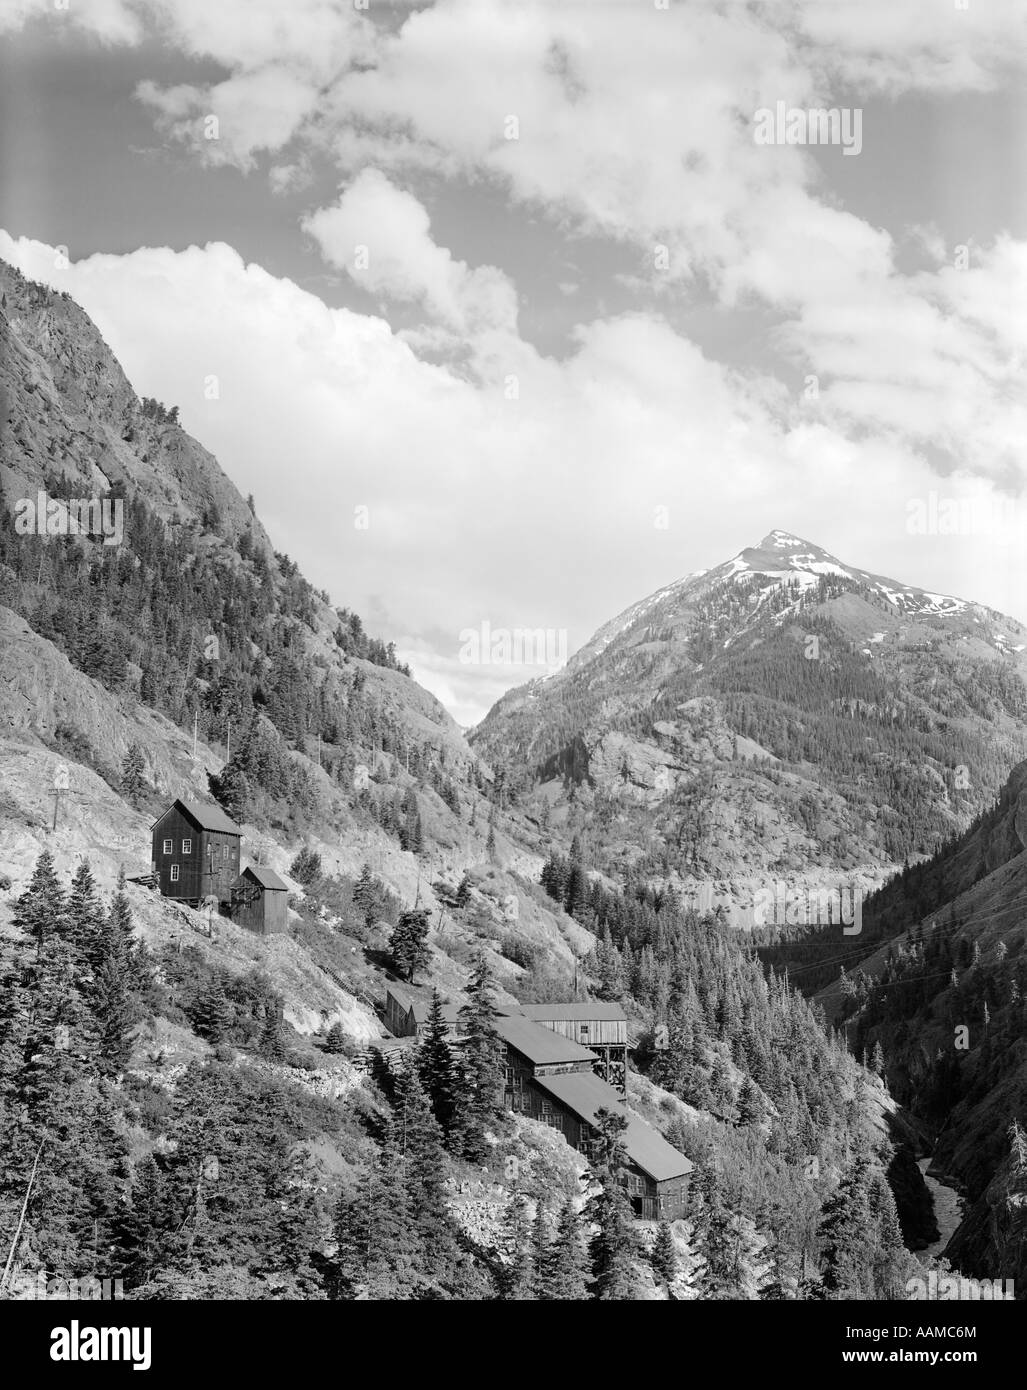 1930s OLD MINE BUILDINGS IN MOUNTAINS - Stock Image